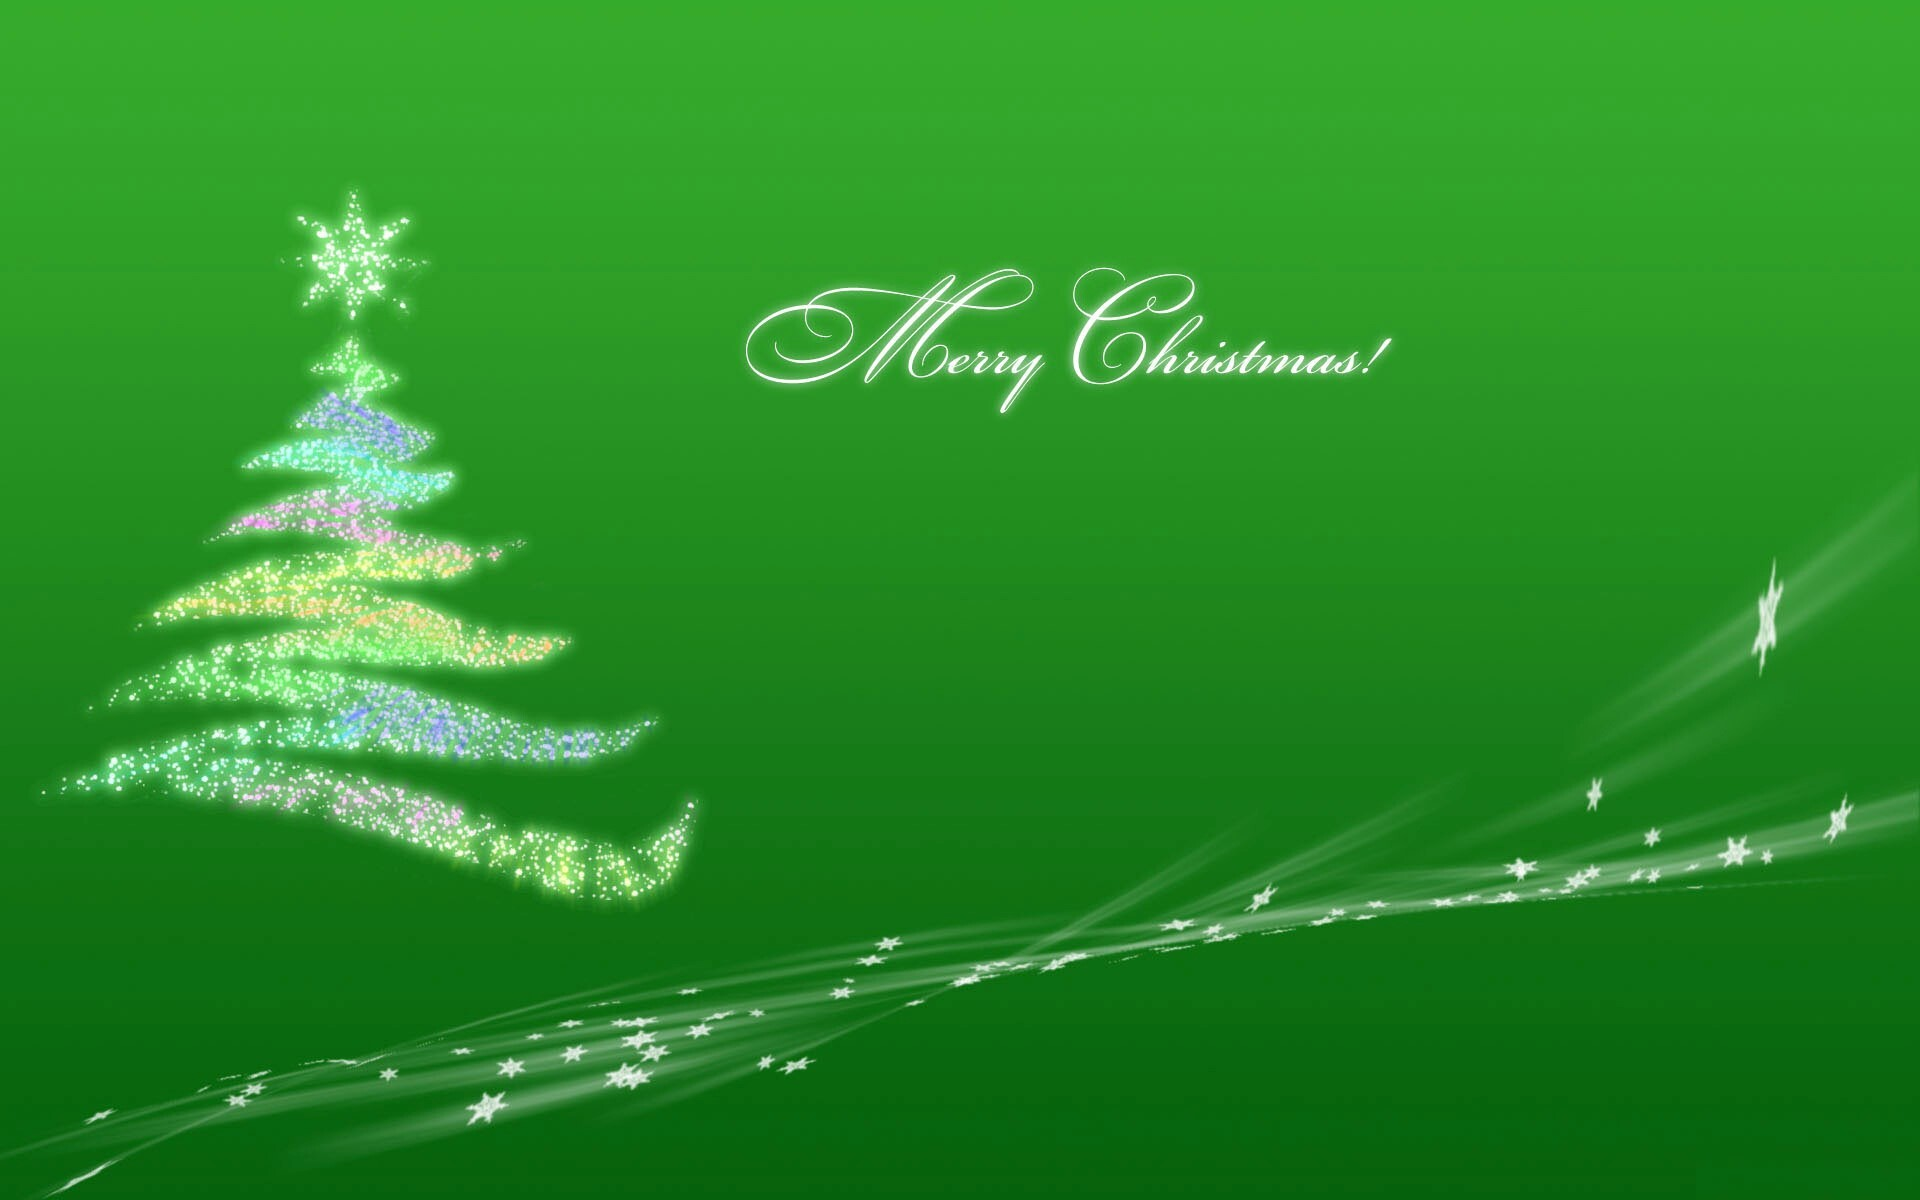 Merry Christmas Green Wallpaper On Holiday Free Download